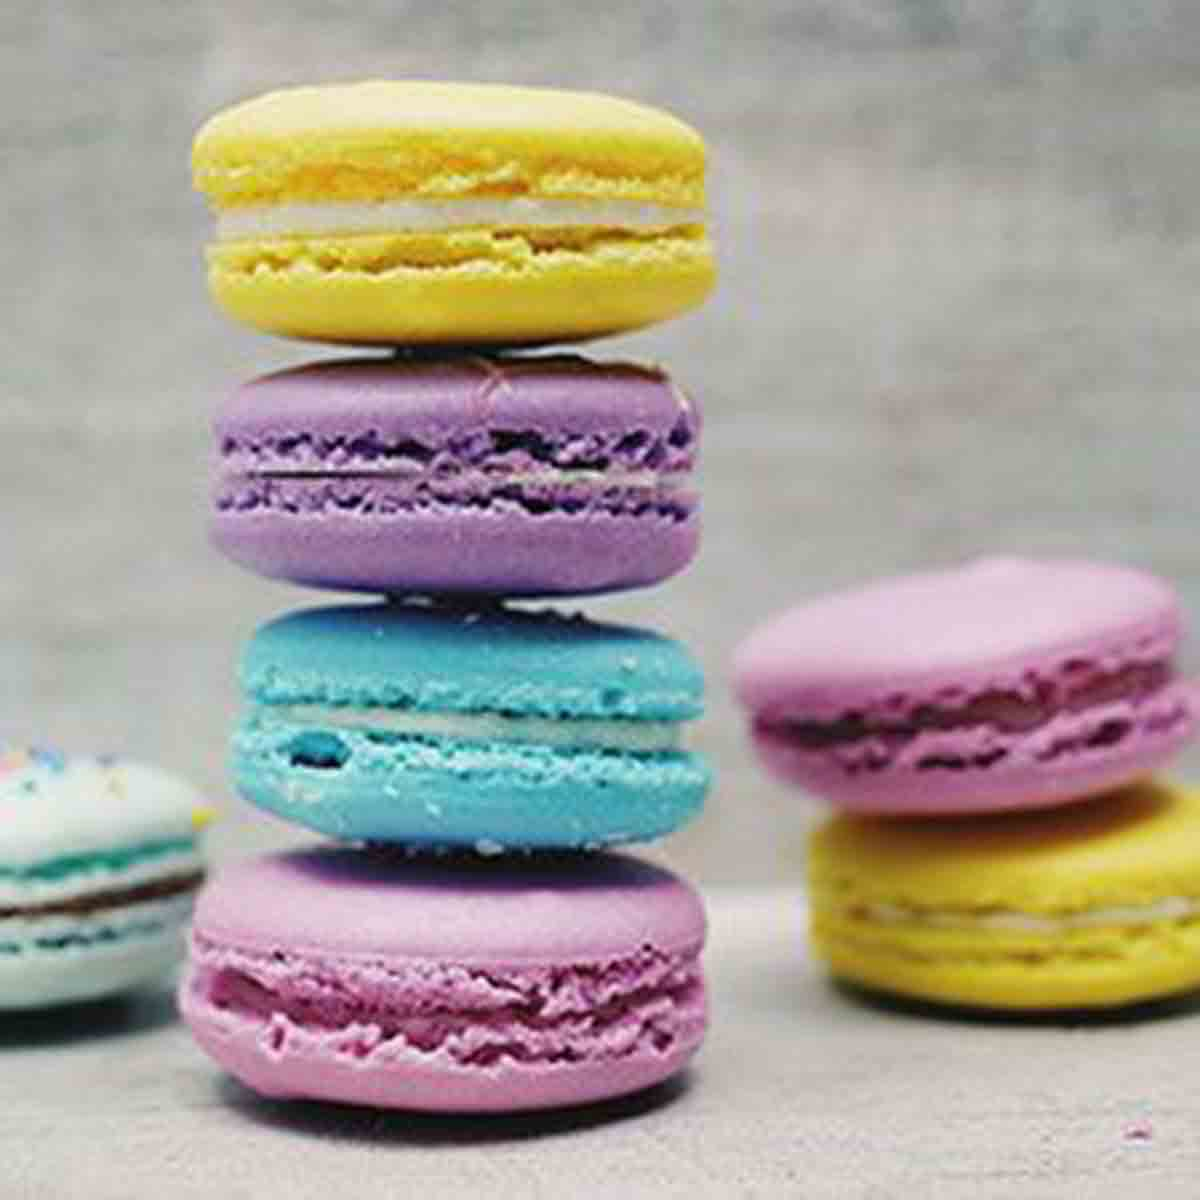 colourful macarons treats